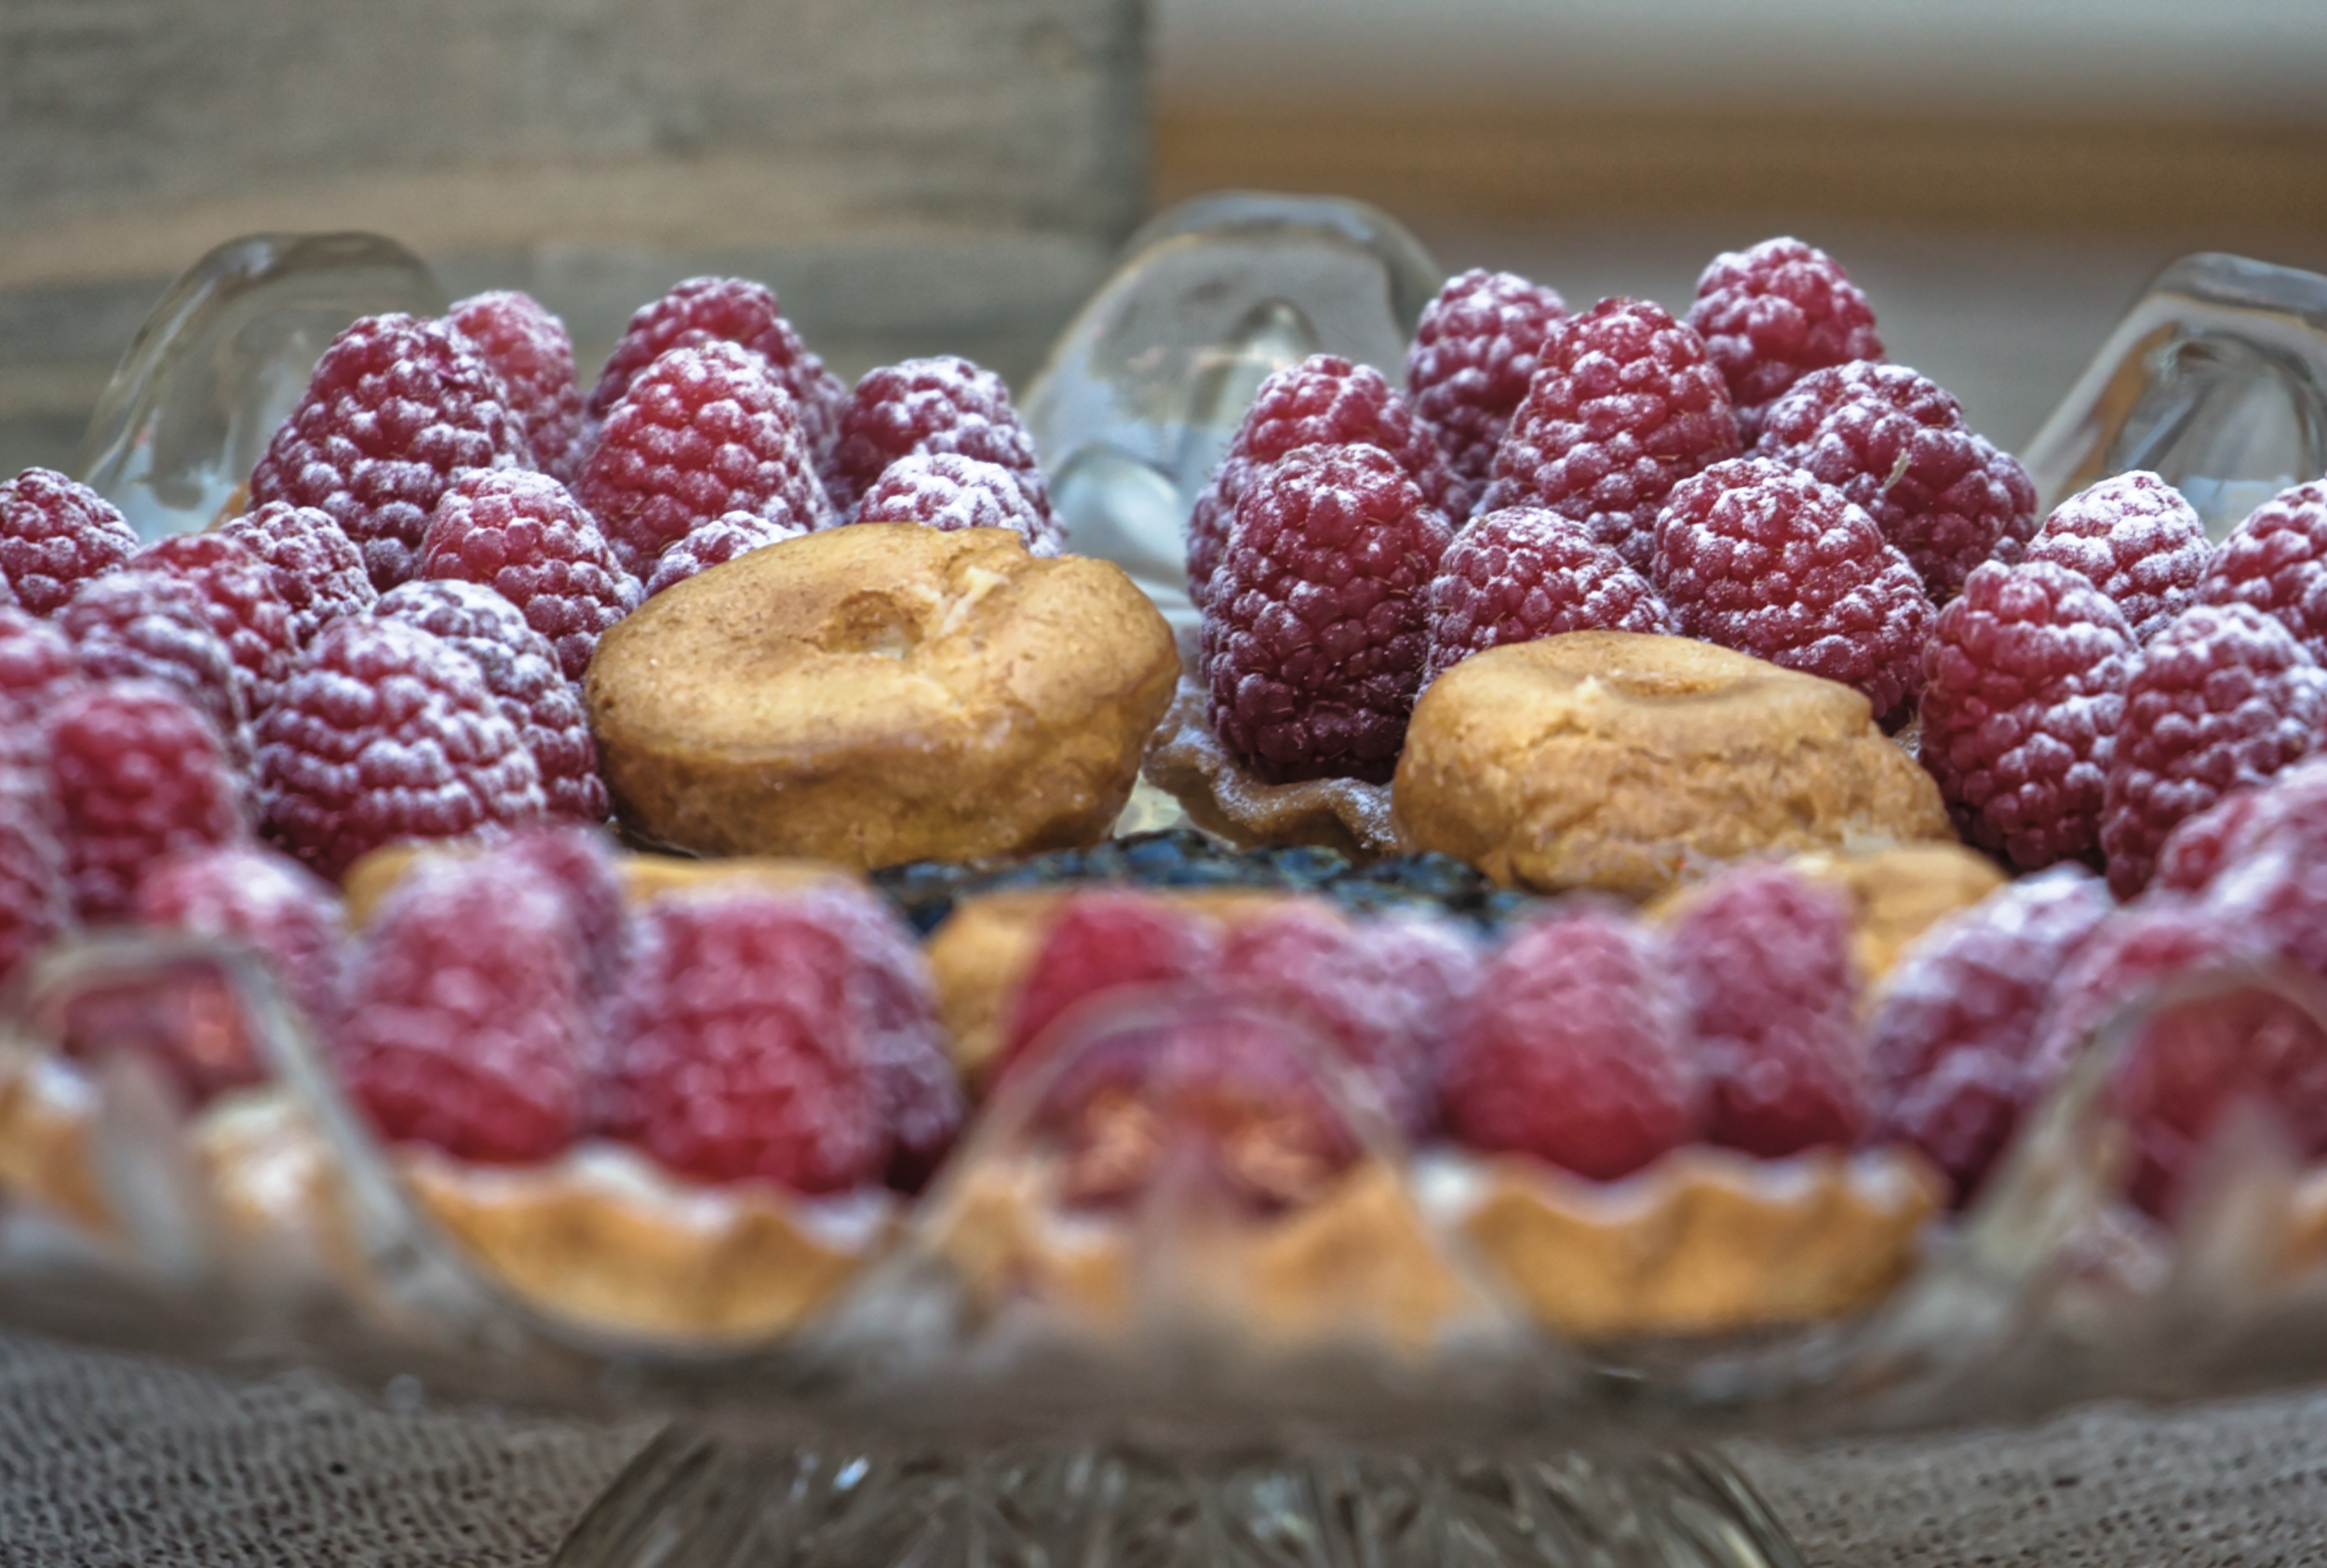 Artisinal Tartelettes With Local Organic Raspberries